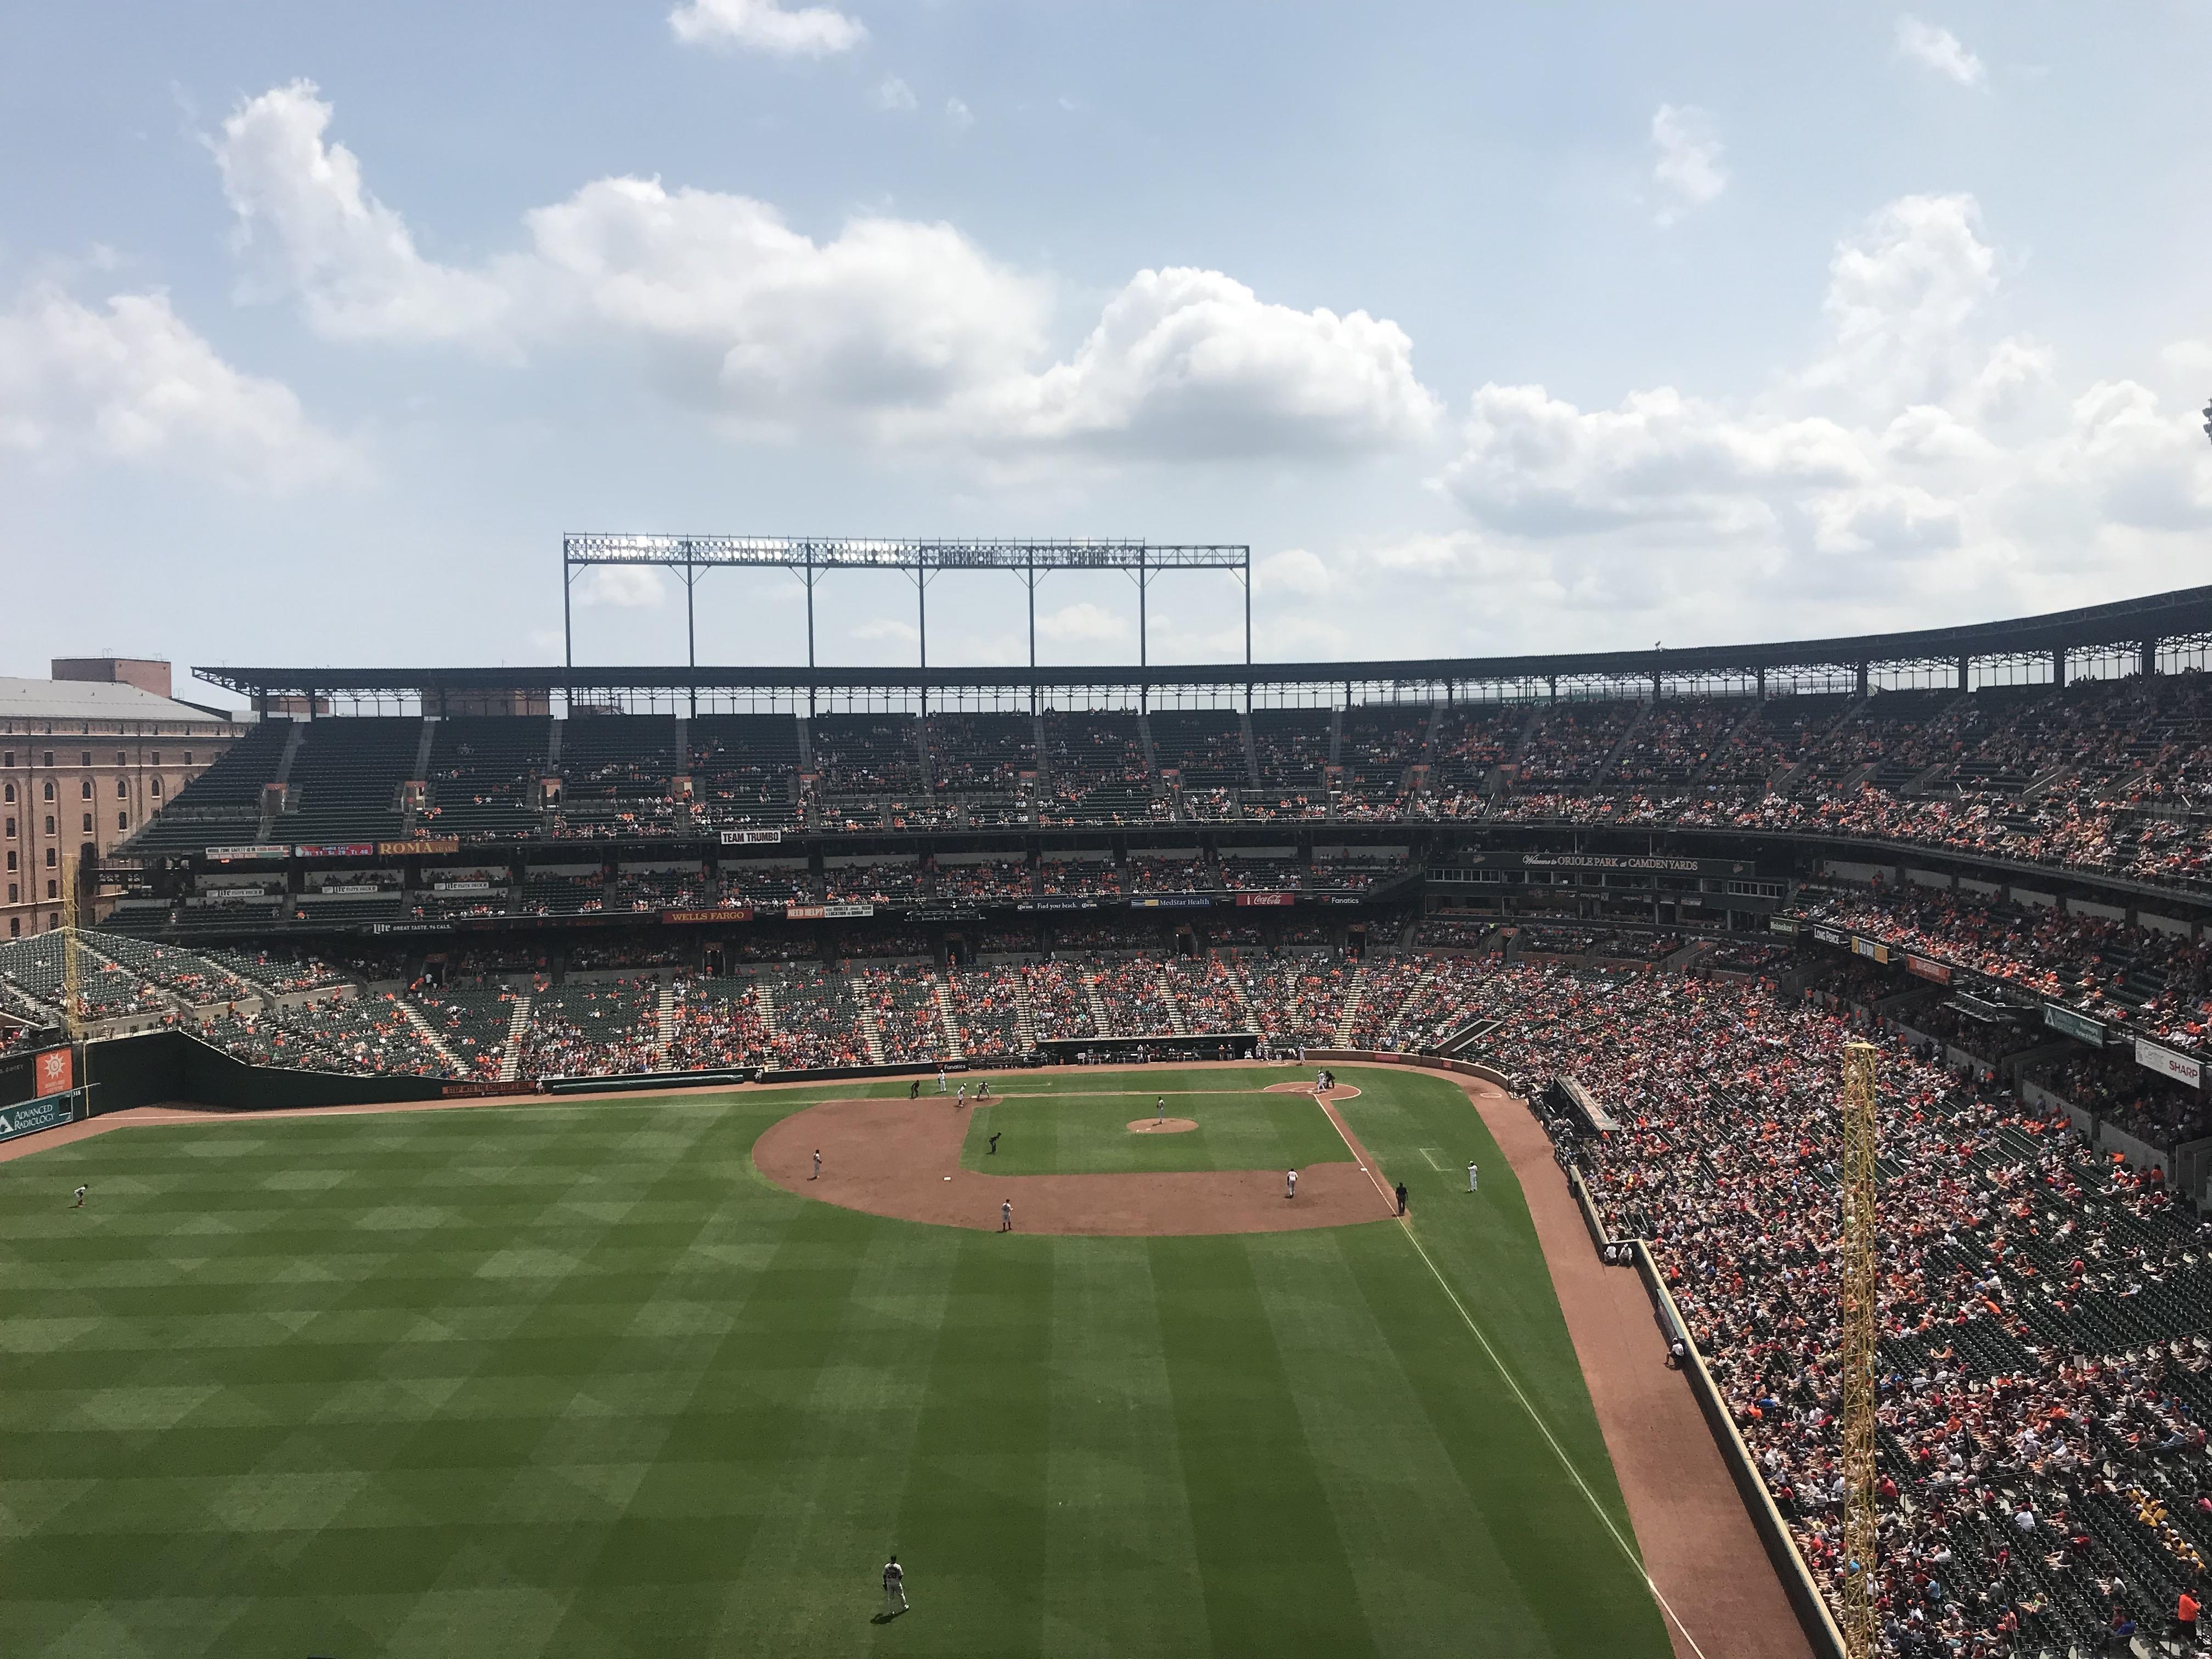 Oriole Park at Camden Yards Section 382 Row 15 Seat 8